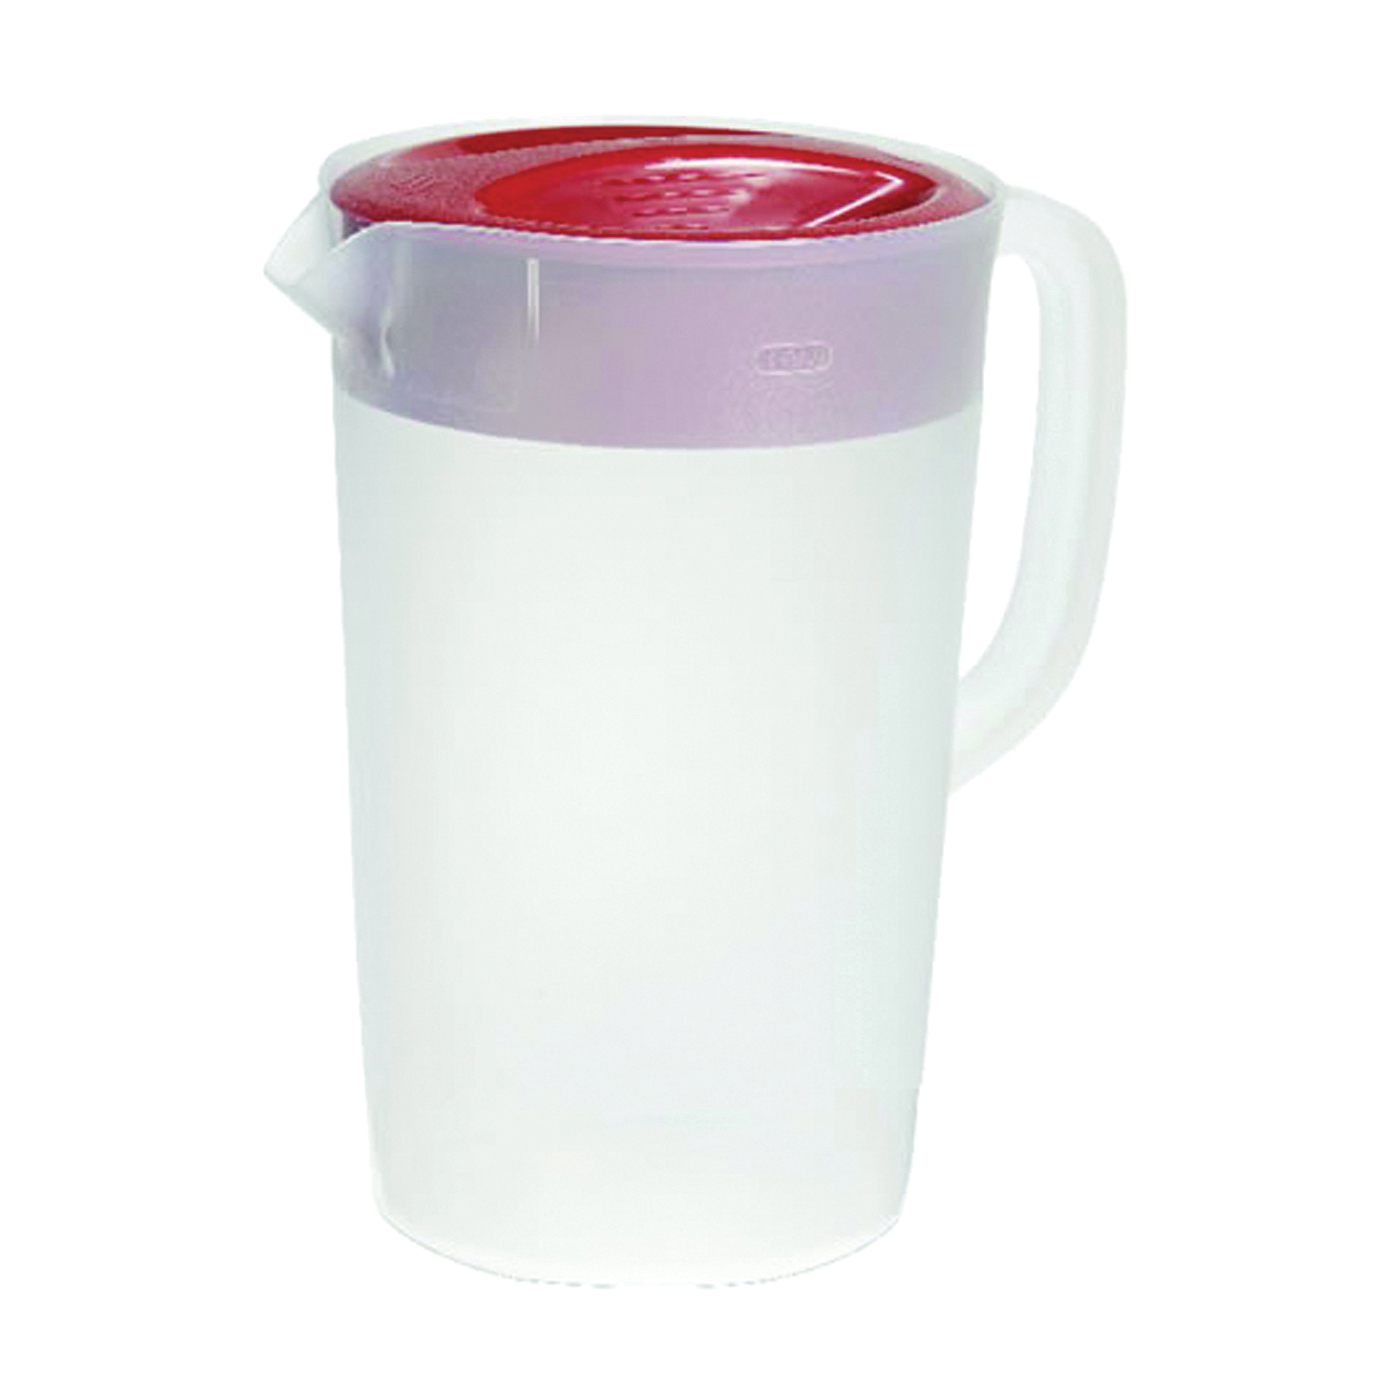 Picture of Rubbermaid 1777155 Pitcher, 1 gal Capacity, Polyethylene, Clear/Racer Red